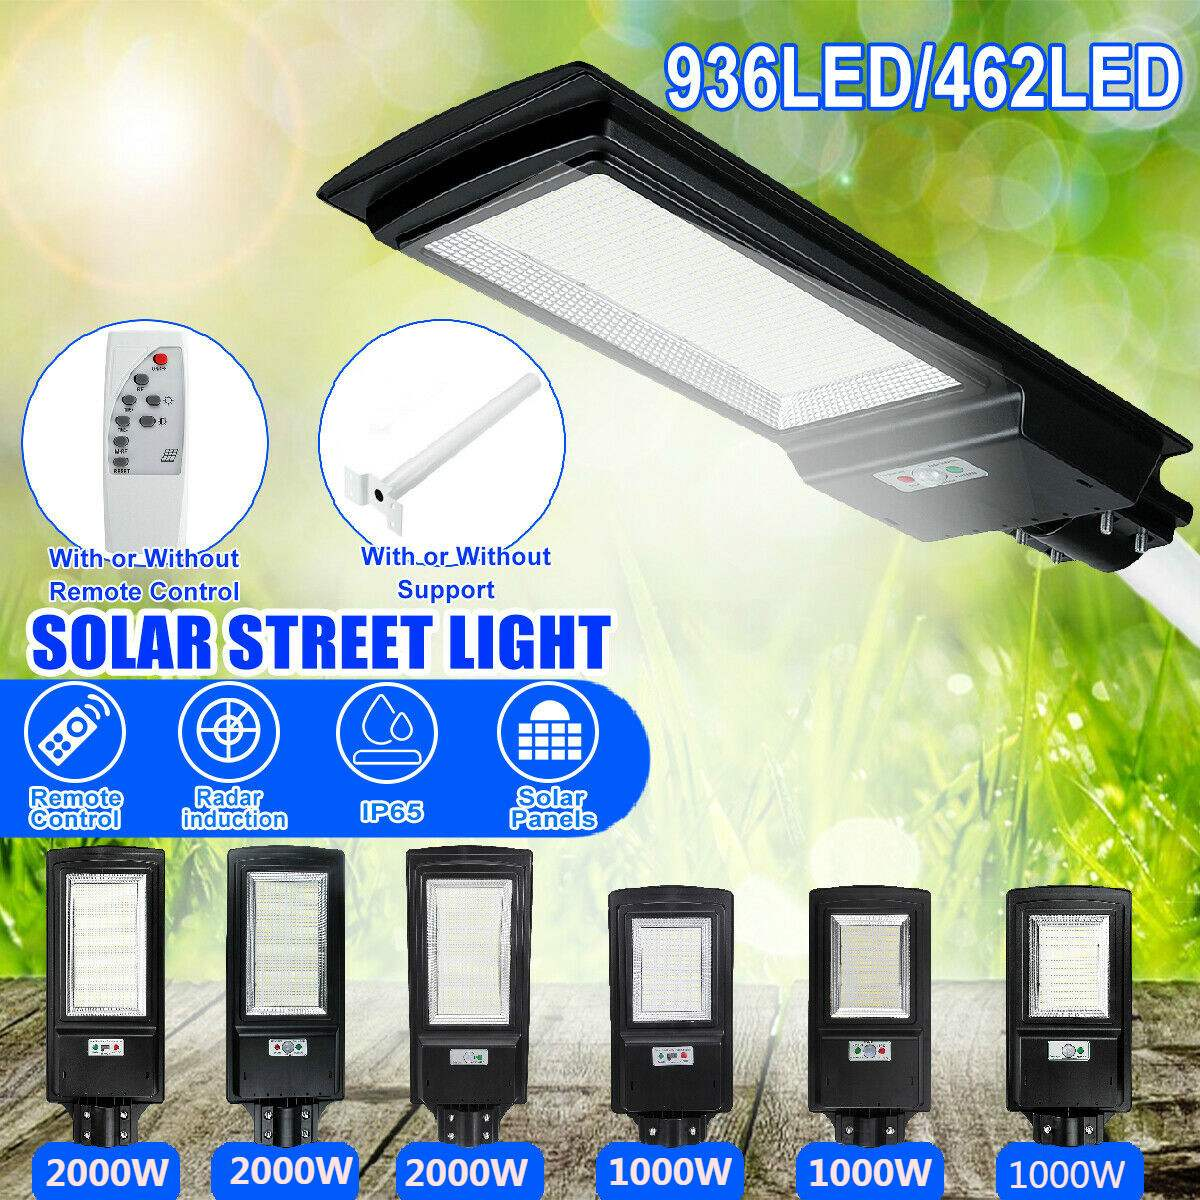 LED Solar Street Light 1000W 2000W IP65 8500K Light Radar Motion Sensor Wall Timing Lamp Remote Control For Garden Outdoor